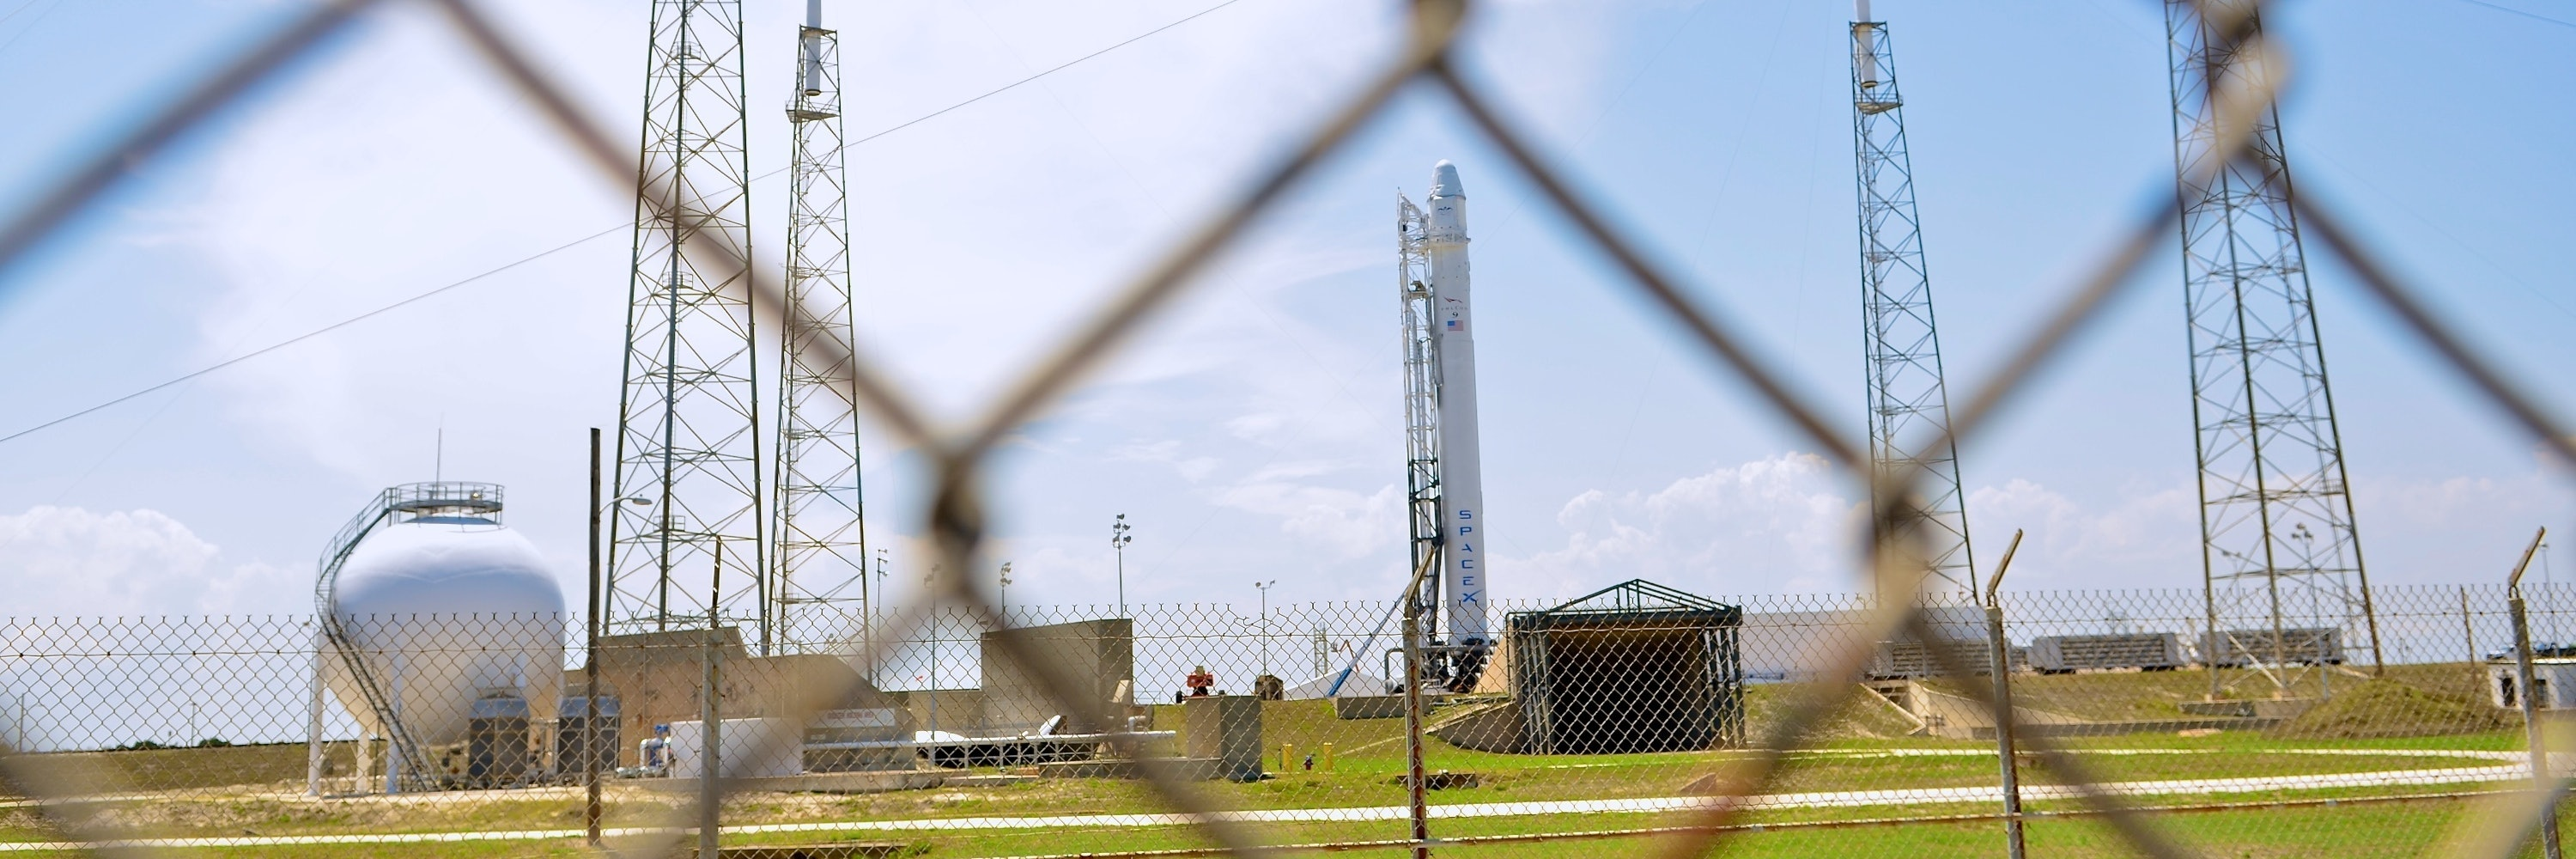 TITUSVILLE, FL - MAY 18: SpaceX rocket Falcon 9 sits on Pad 40 of the Cape Canaveral Air Force Station in Titusville, Florida. The launch Saturday morning launch would make SpaceX the first commercial company to send a spacecraft to the International Space Station. (Photo by Roberto Gonzalez/Getty Images)